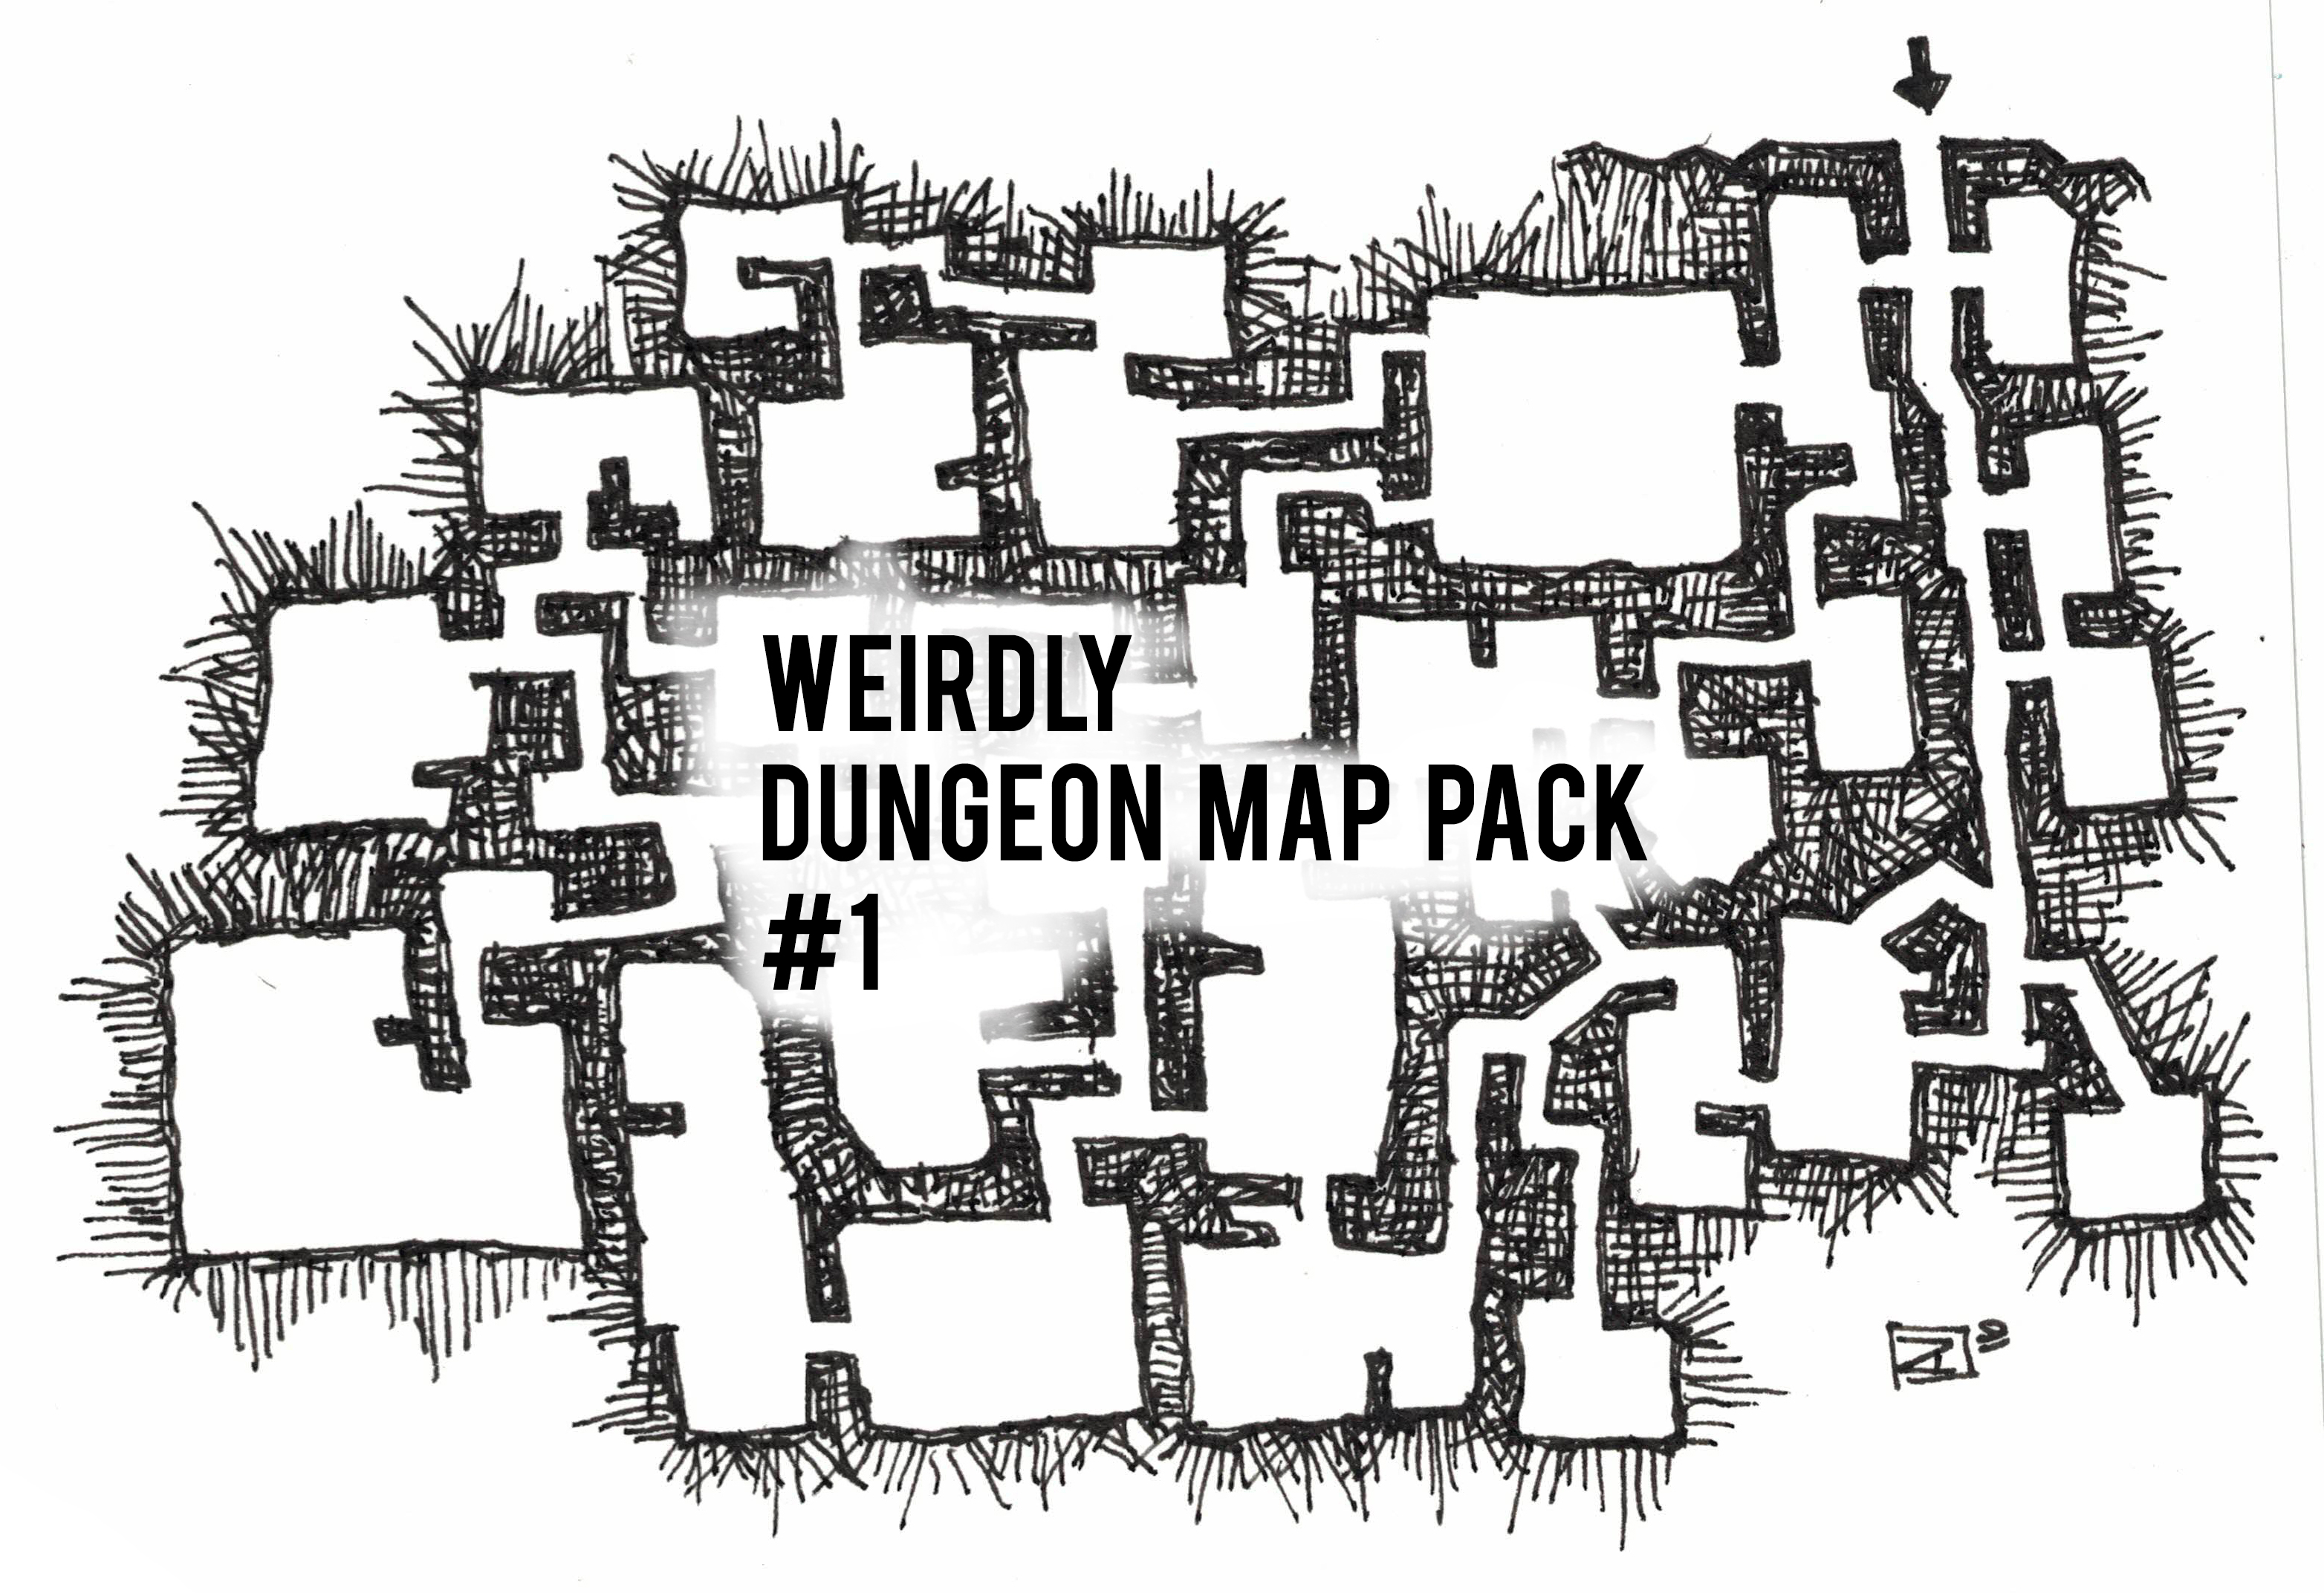 Weirdly Dungeon Map Pack #1 - Payhip